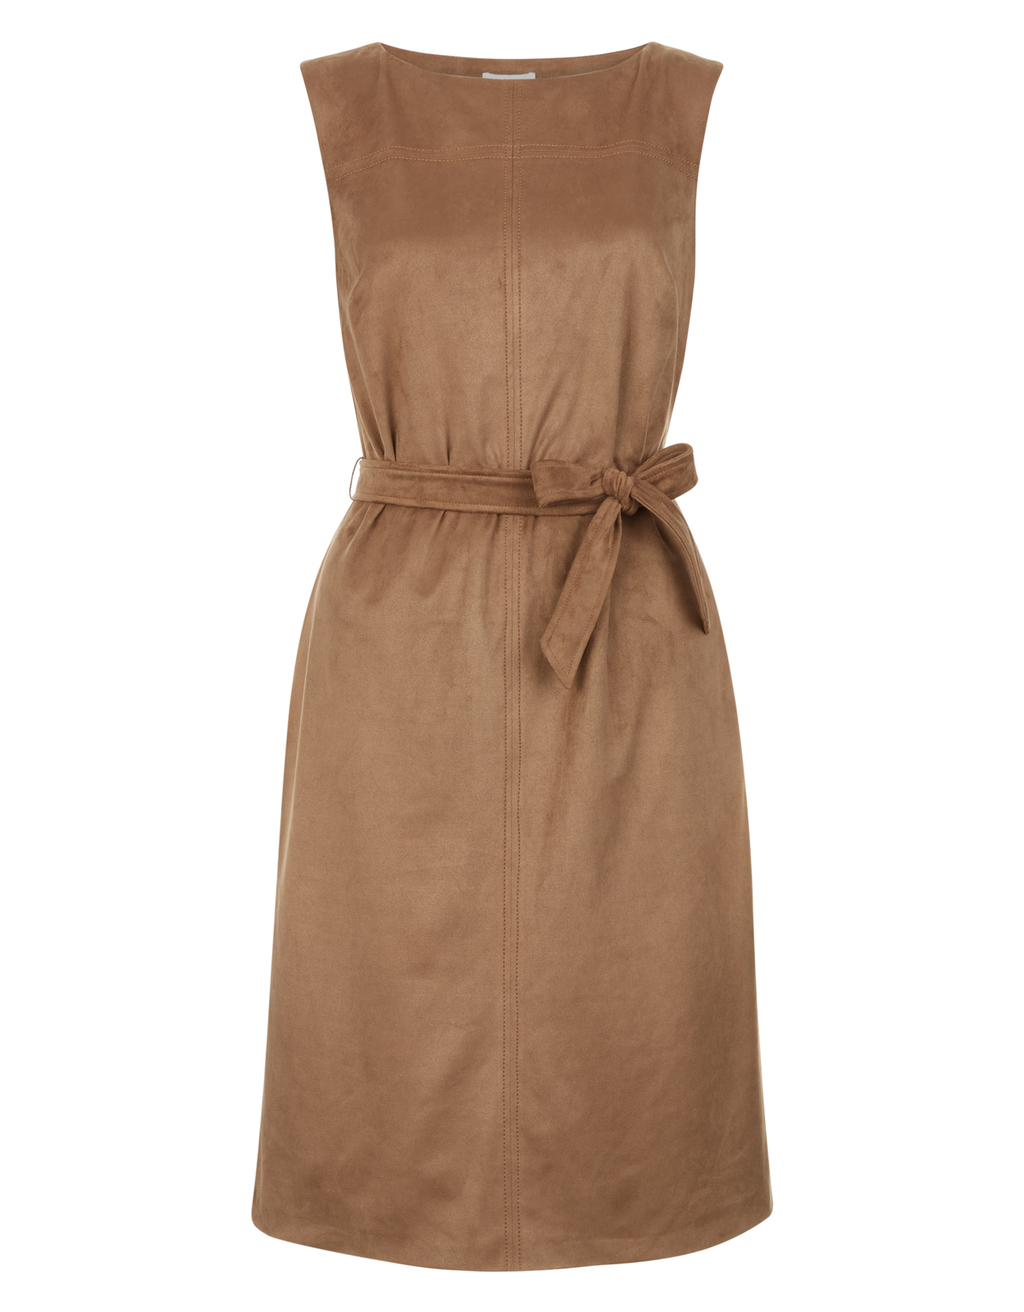 Arya Suedette Dress - style: shift; fit: tailored/fitted; pattern: plain; sleeve style: sleeveless; waist detail: belted waist/tie at waist/drawstring; predominant colour: tan; length: just above the knee; fibres: polyester/polyamide - 100%; neckline: crew; sleeve length: sleeveless; pattern type: fabric; texture group: suede; occasions: creative work; season: s/s 2016